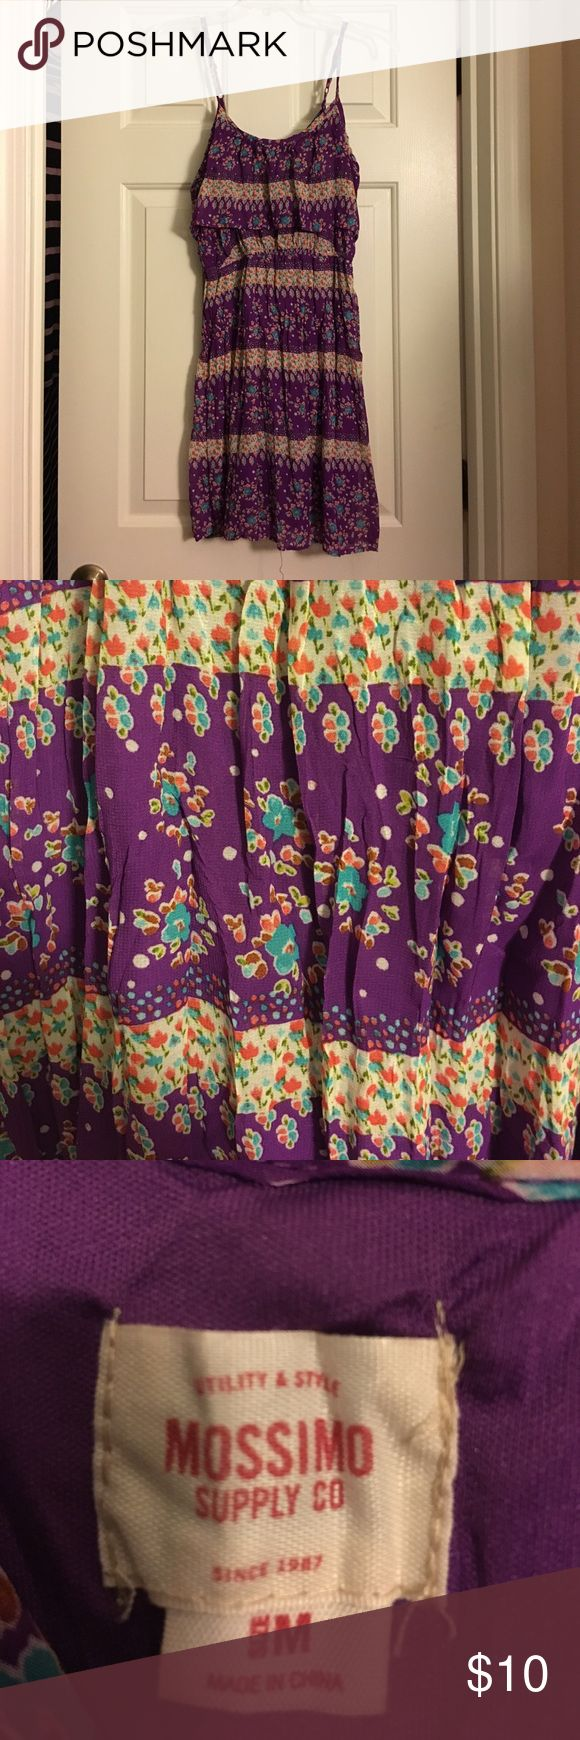 Mossimo purple sundress Mossimo purple sundress. 100% polyester Mossimo Supply Co. Dresses